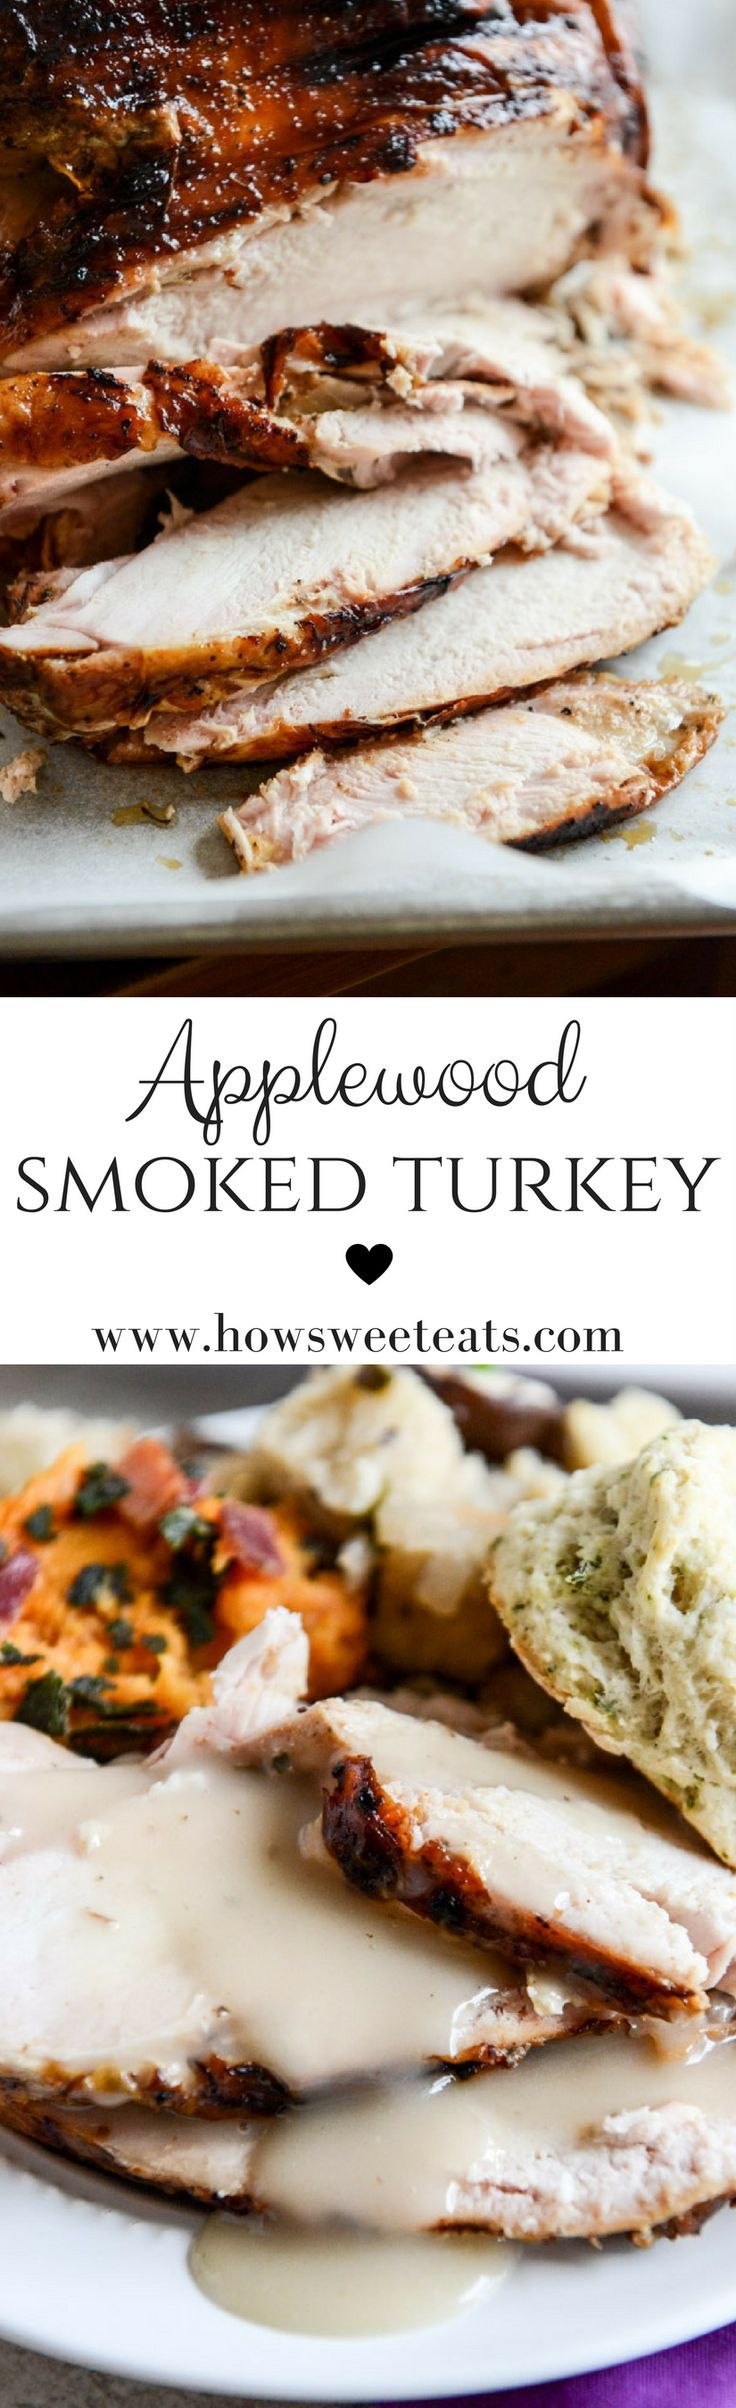 Applewood Smoked Turkey bread for Thanksgiving! I howsweeteats.com @howsweeteats